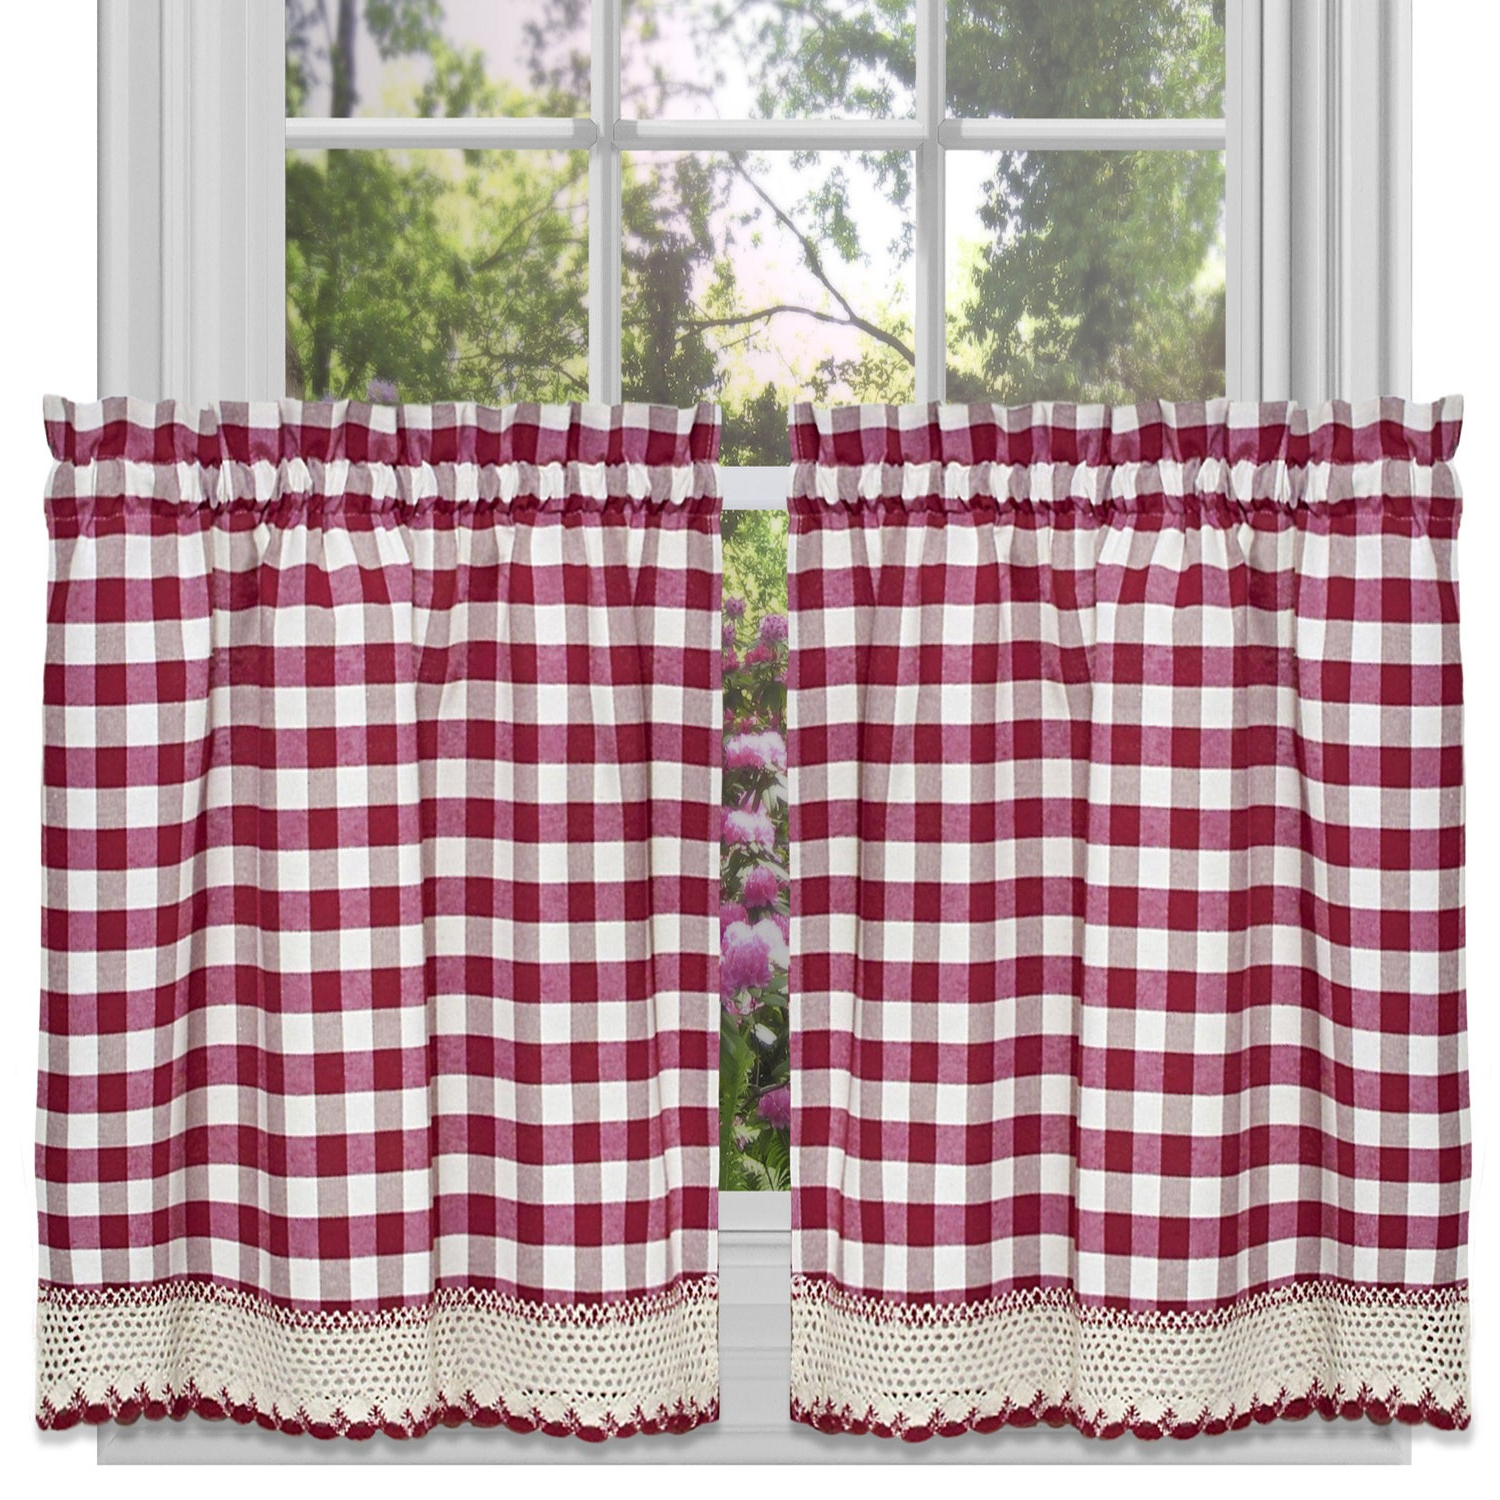 Best And Newest Classic Navy Cotton Blend Buffalo Check Kitchen Curtain Sets With Regard To Classic Buffalo Check Kitchen Burgundy/white Curtain Set Or Separates (View 8 of 20)